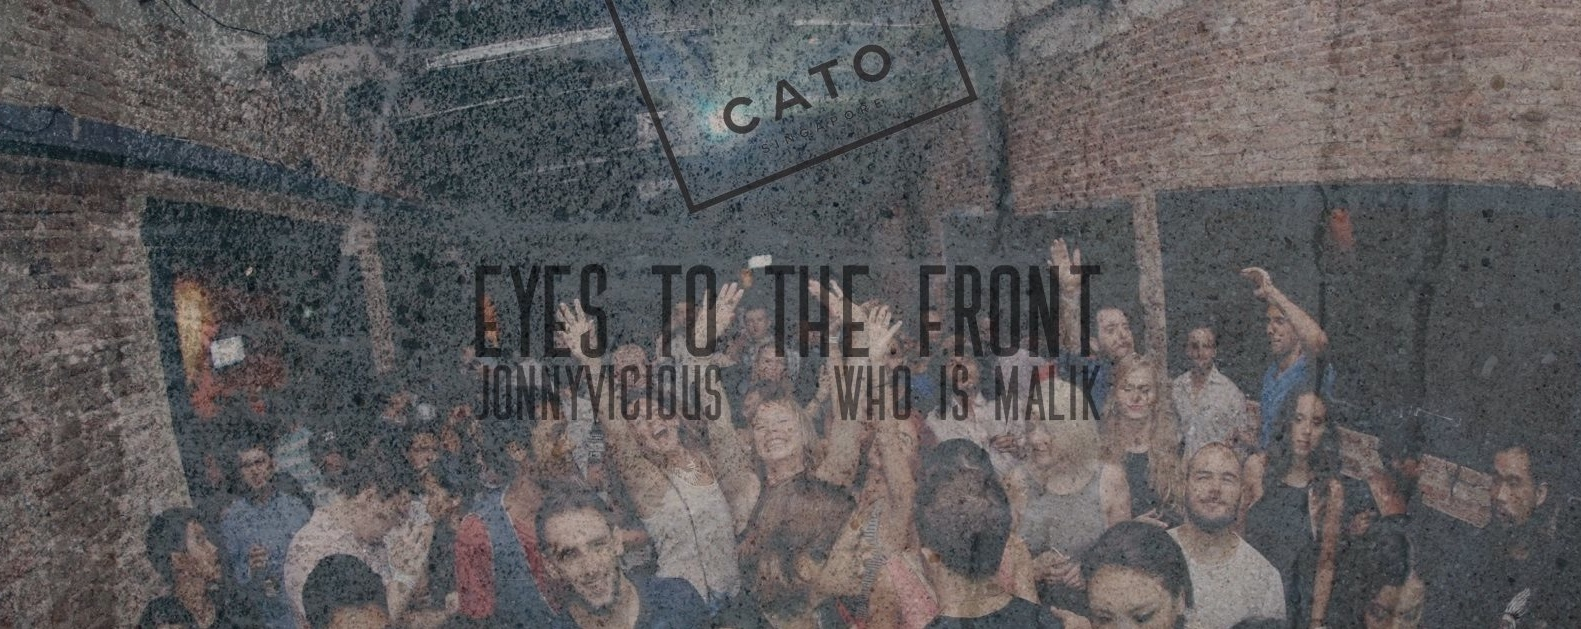 Eyes to the Front - Loft Party